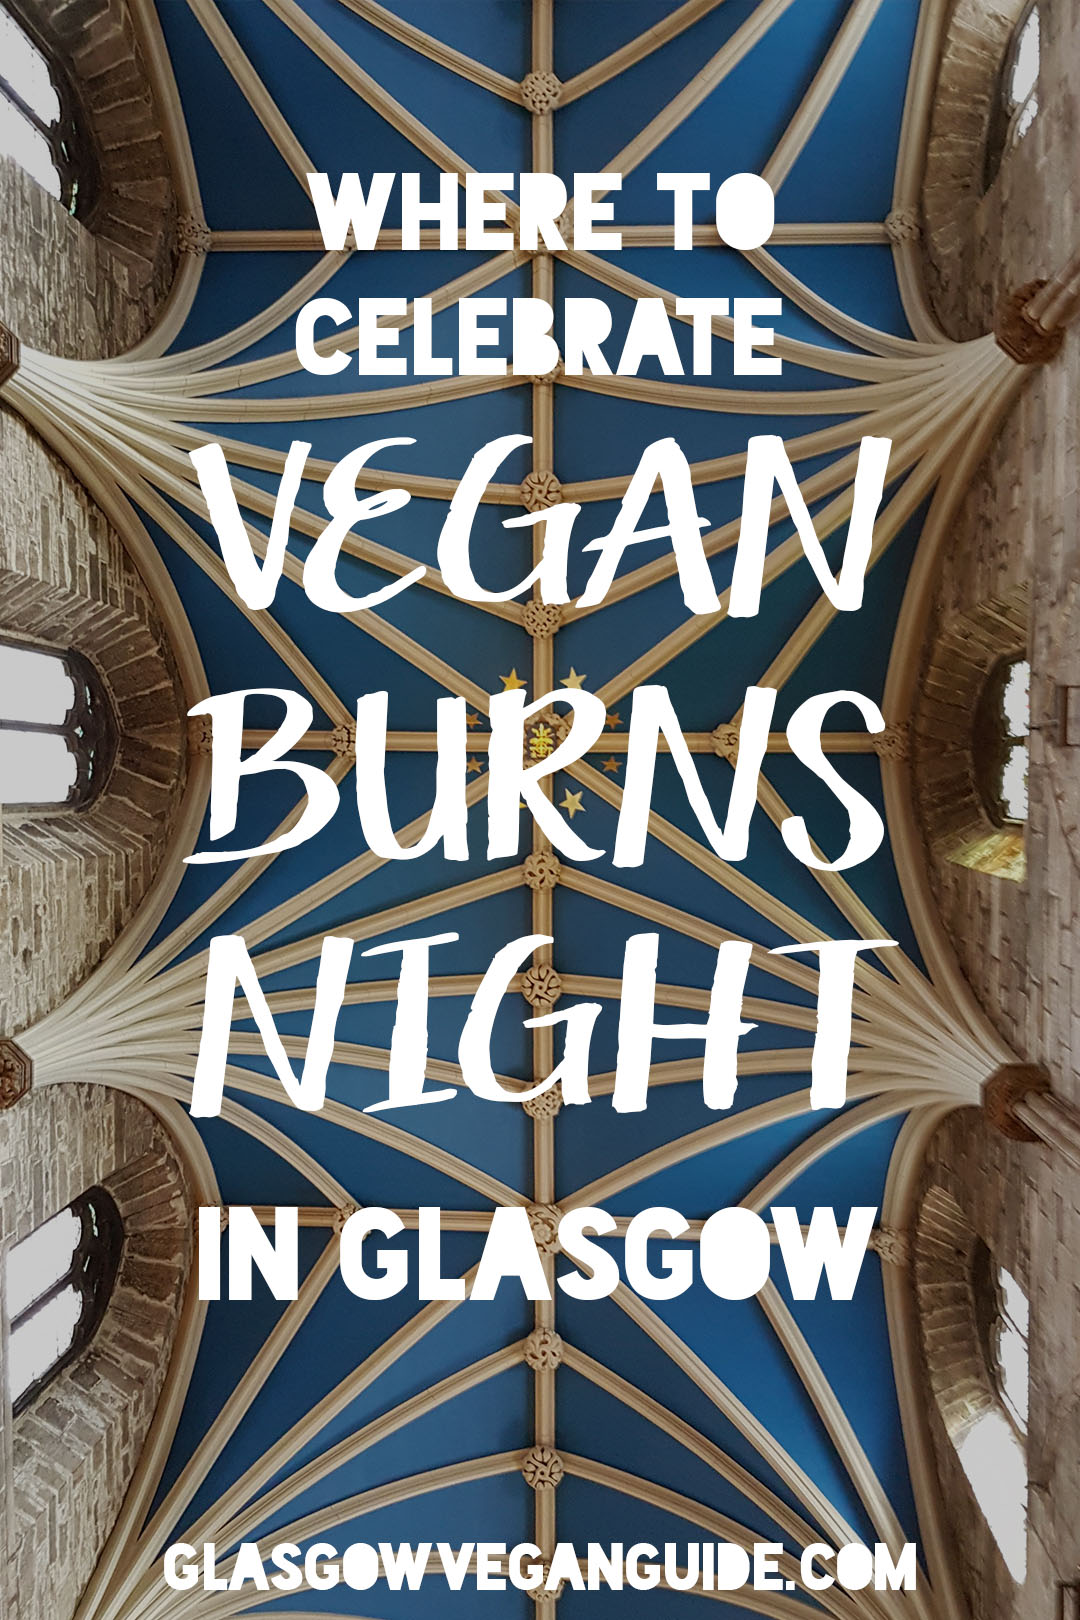 Do you love the songs and poems of Scotland's National bard, Robert Burns? Or do you simply love the tradition of a proper haggis supper at this time of the year? Being vegan doesn't mean you can't celebrate Burns Night, and here are some vegan Burns Night celebrations in Glasgow to prove it!